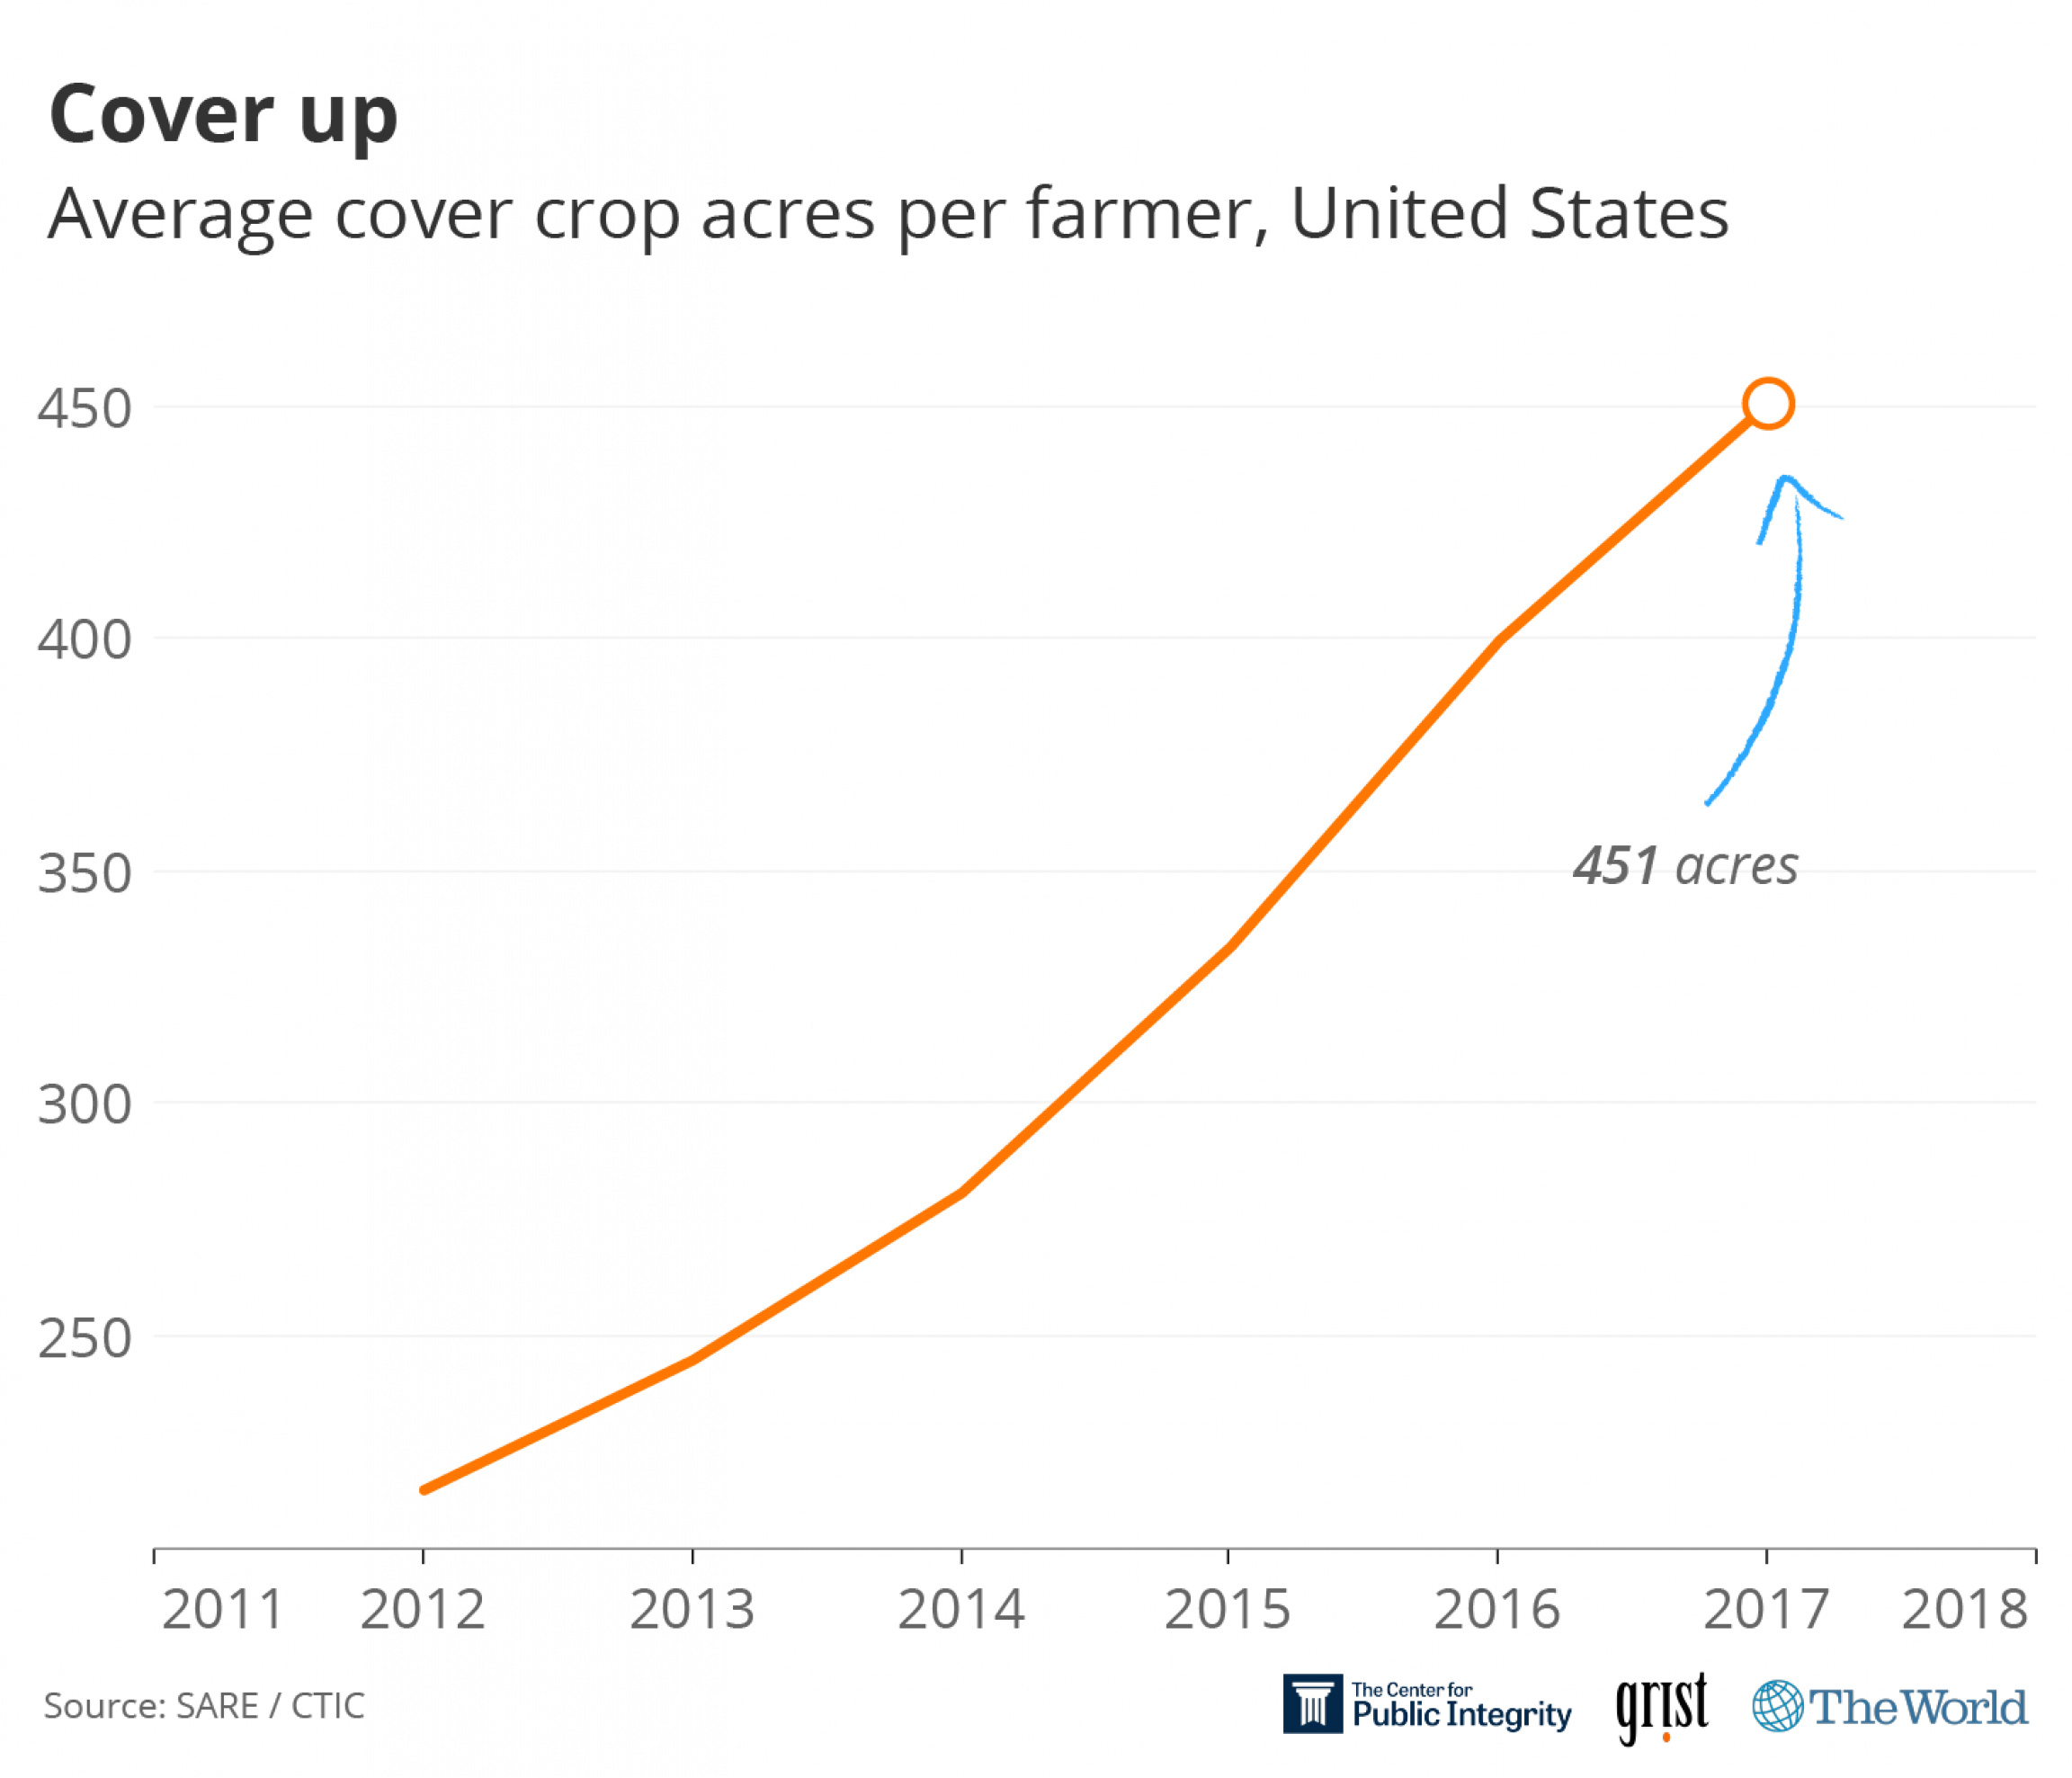 A graphic showing the average cover crop acres per farmer in the United States steadily going up.